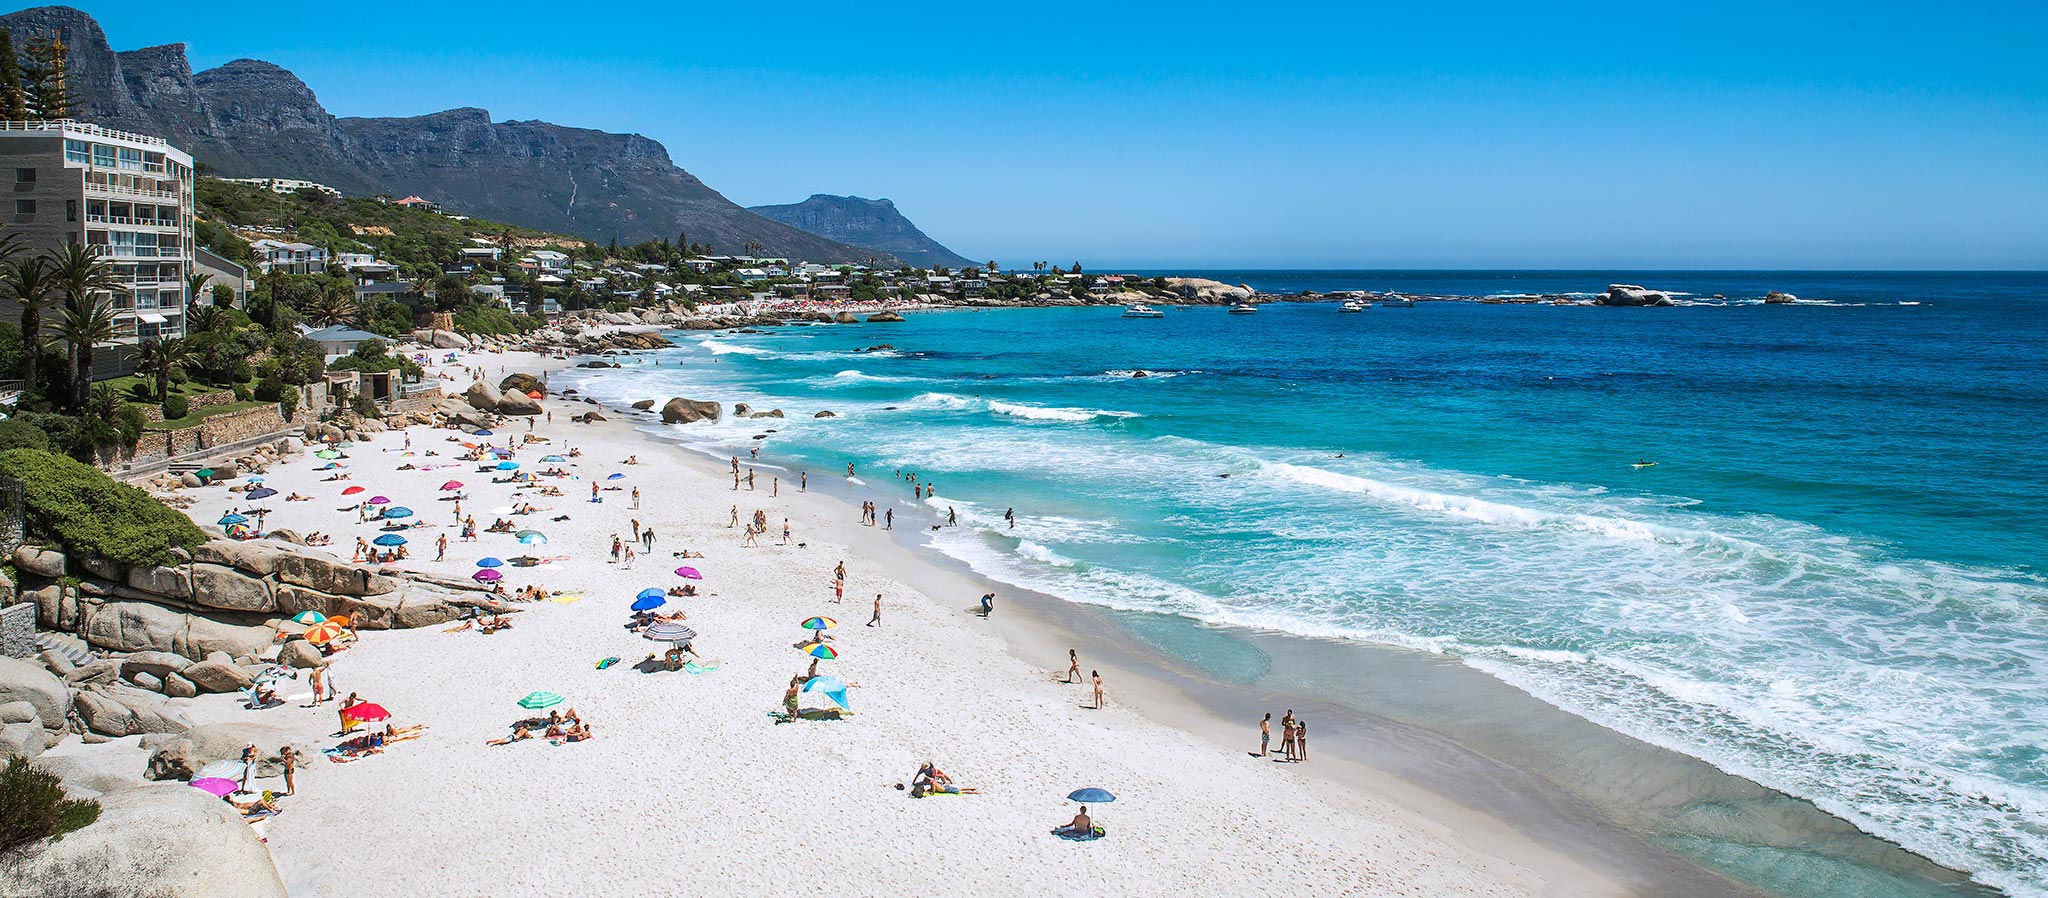 clifton beach in cape town south africa